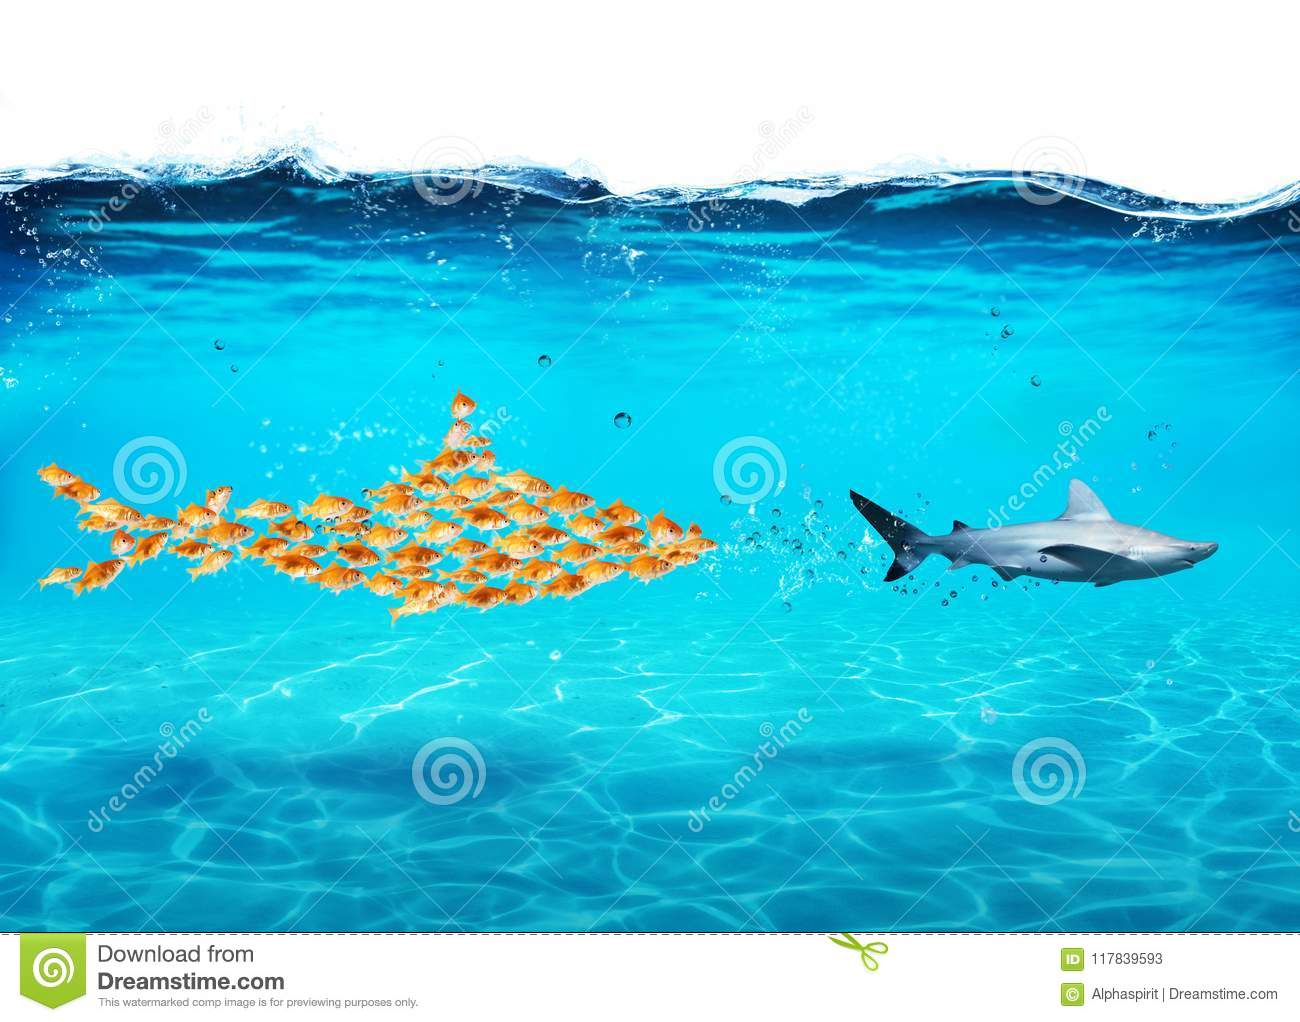 Big shark made of goldfishes attack a real shark. Concept of unity is strength, teamwork and partnership